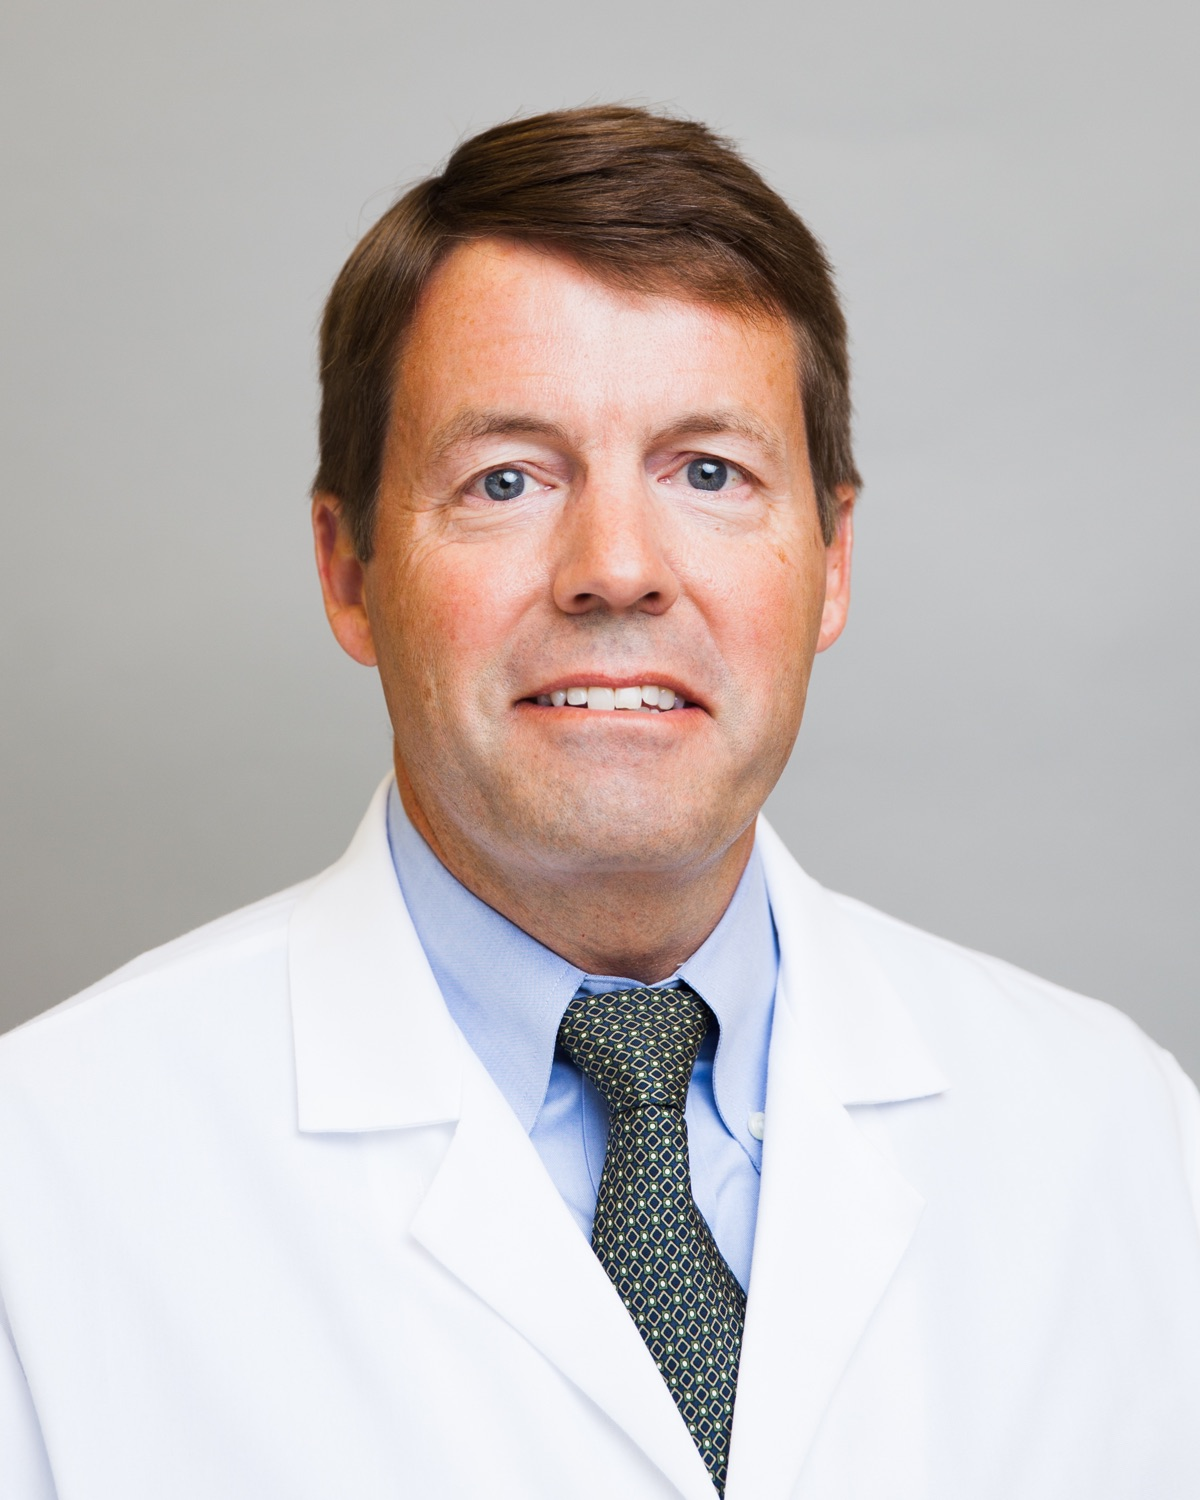 Stephen T. Webster, M.D.